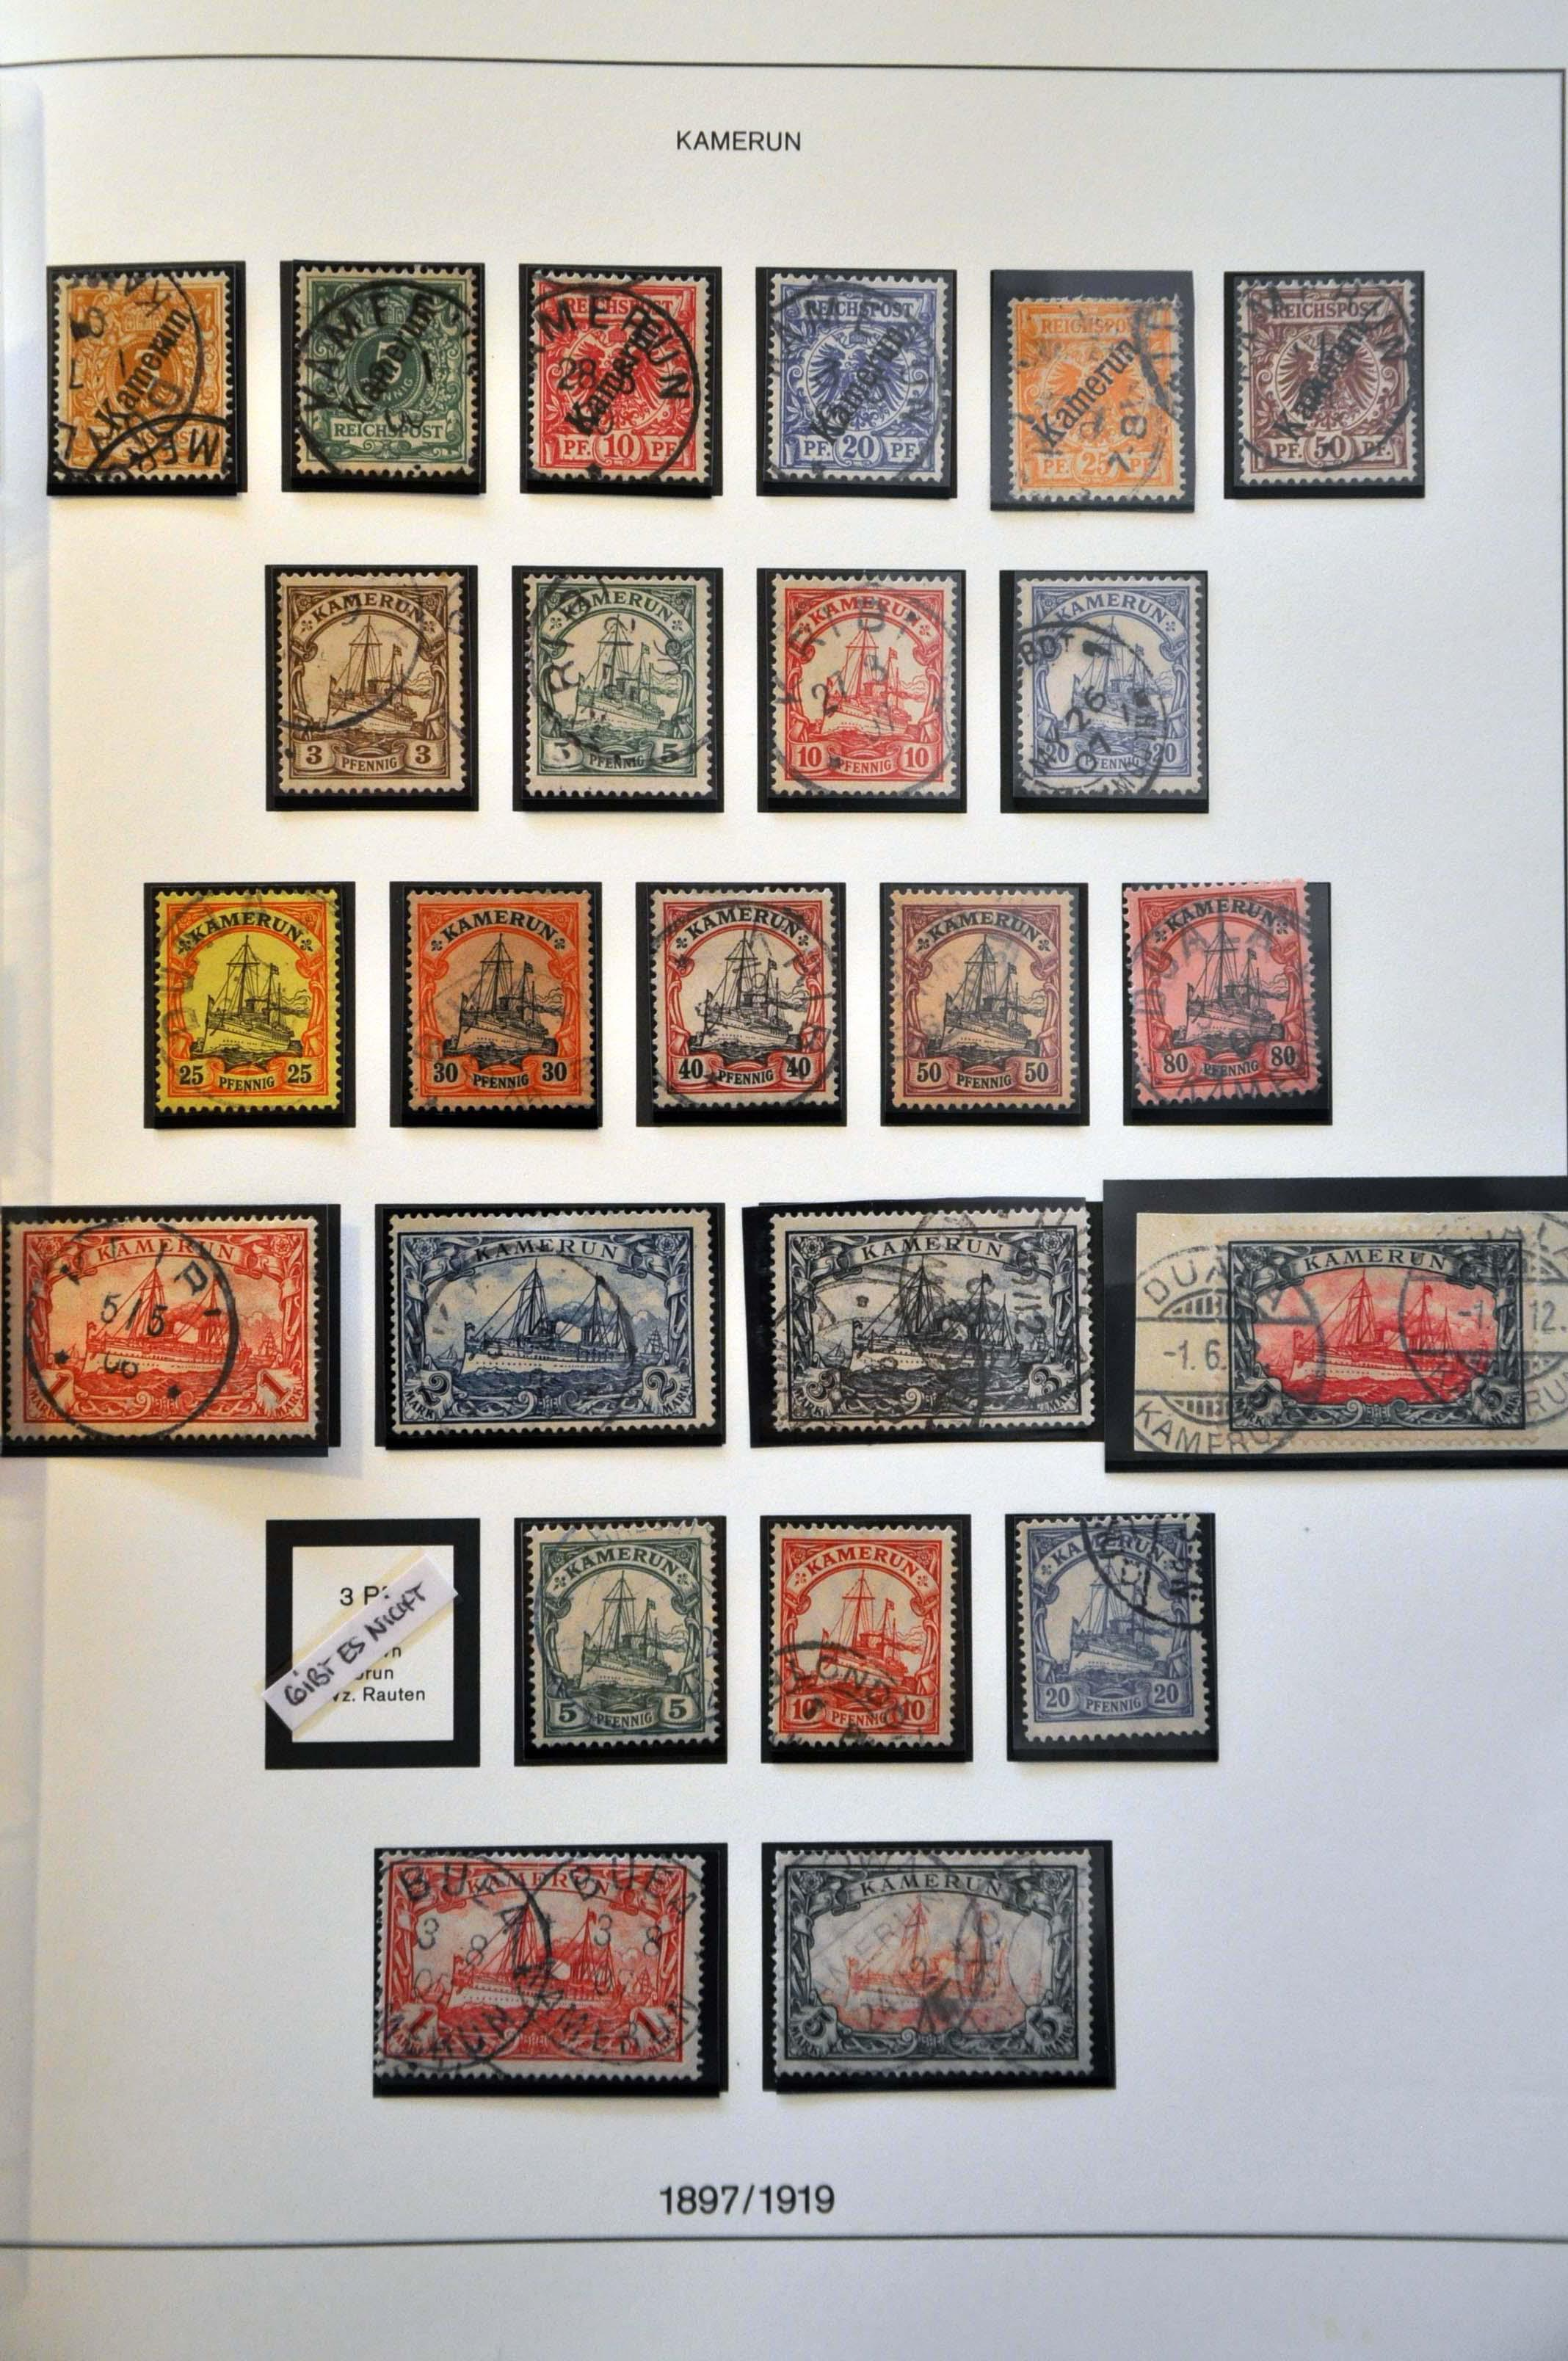 Lot 624 - Germany and former colonies German Colonies and Foreign Post Offices -  Corinphila Veilingen Auction 244 -Netherlands and former colonies, WW2 Postal History, Bosnia, German and British colonies, Egypt. - Day 1